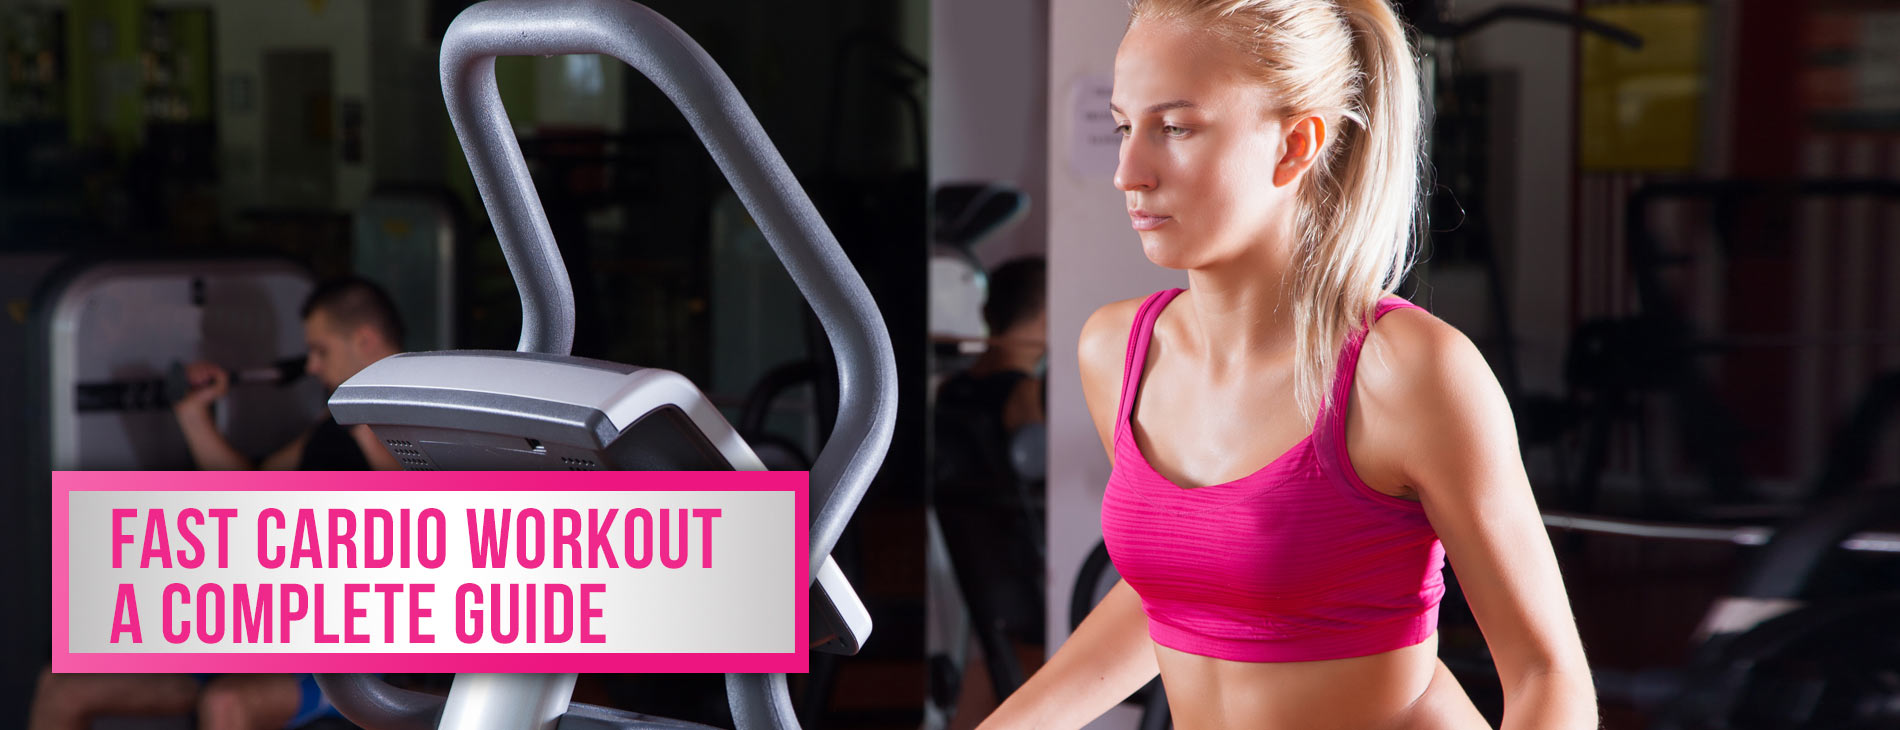 Fast Cardio Workout- A Complete Guide